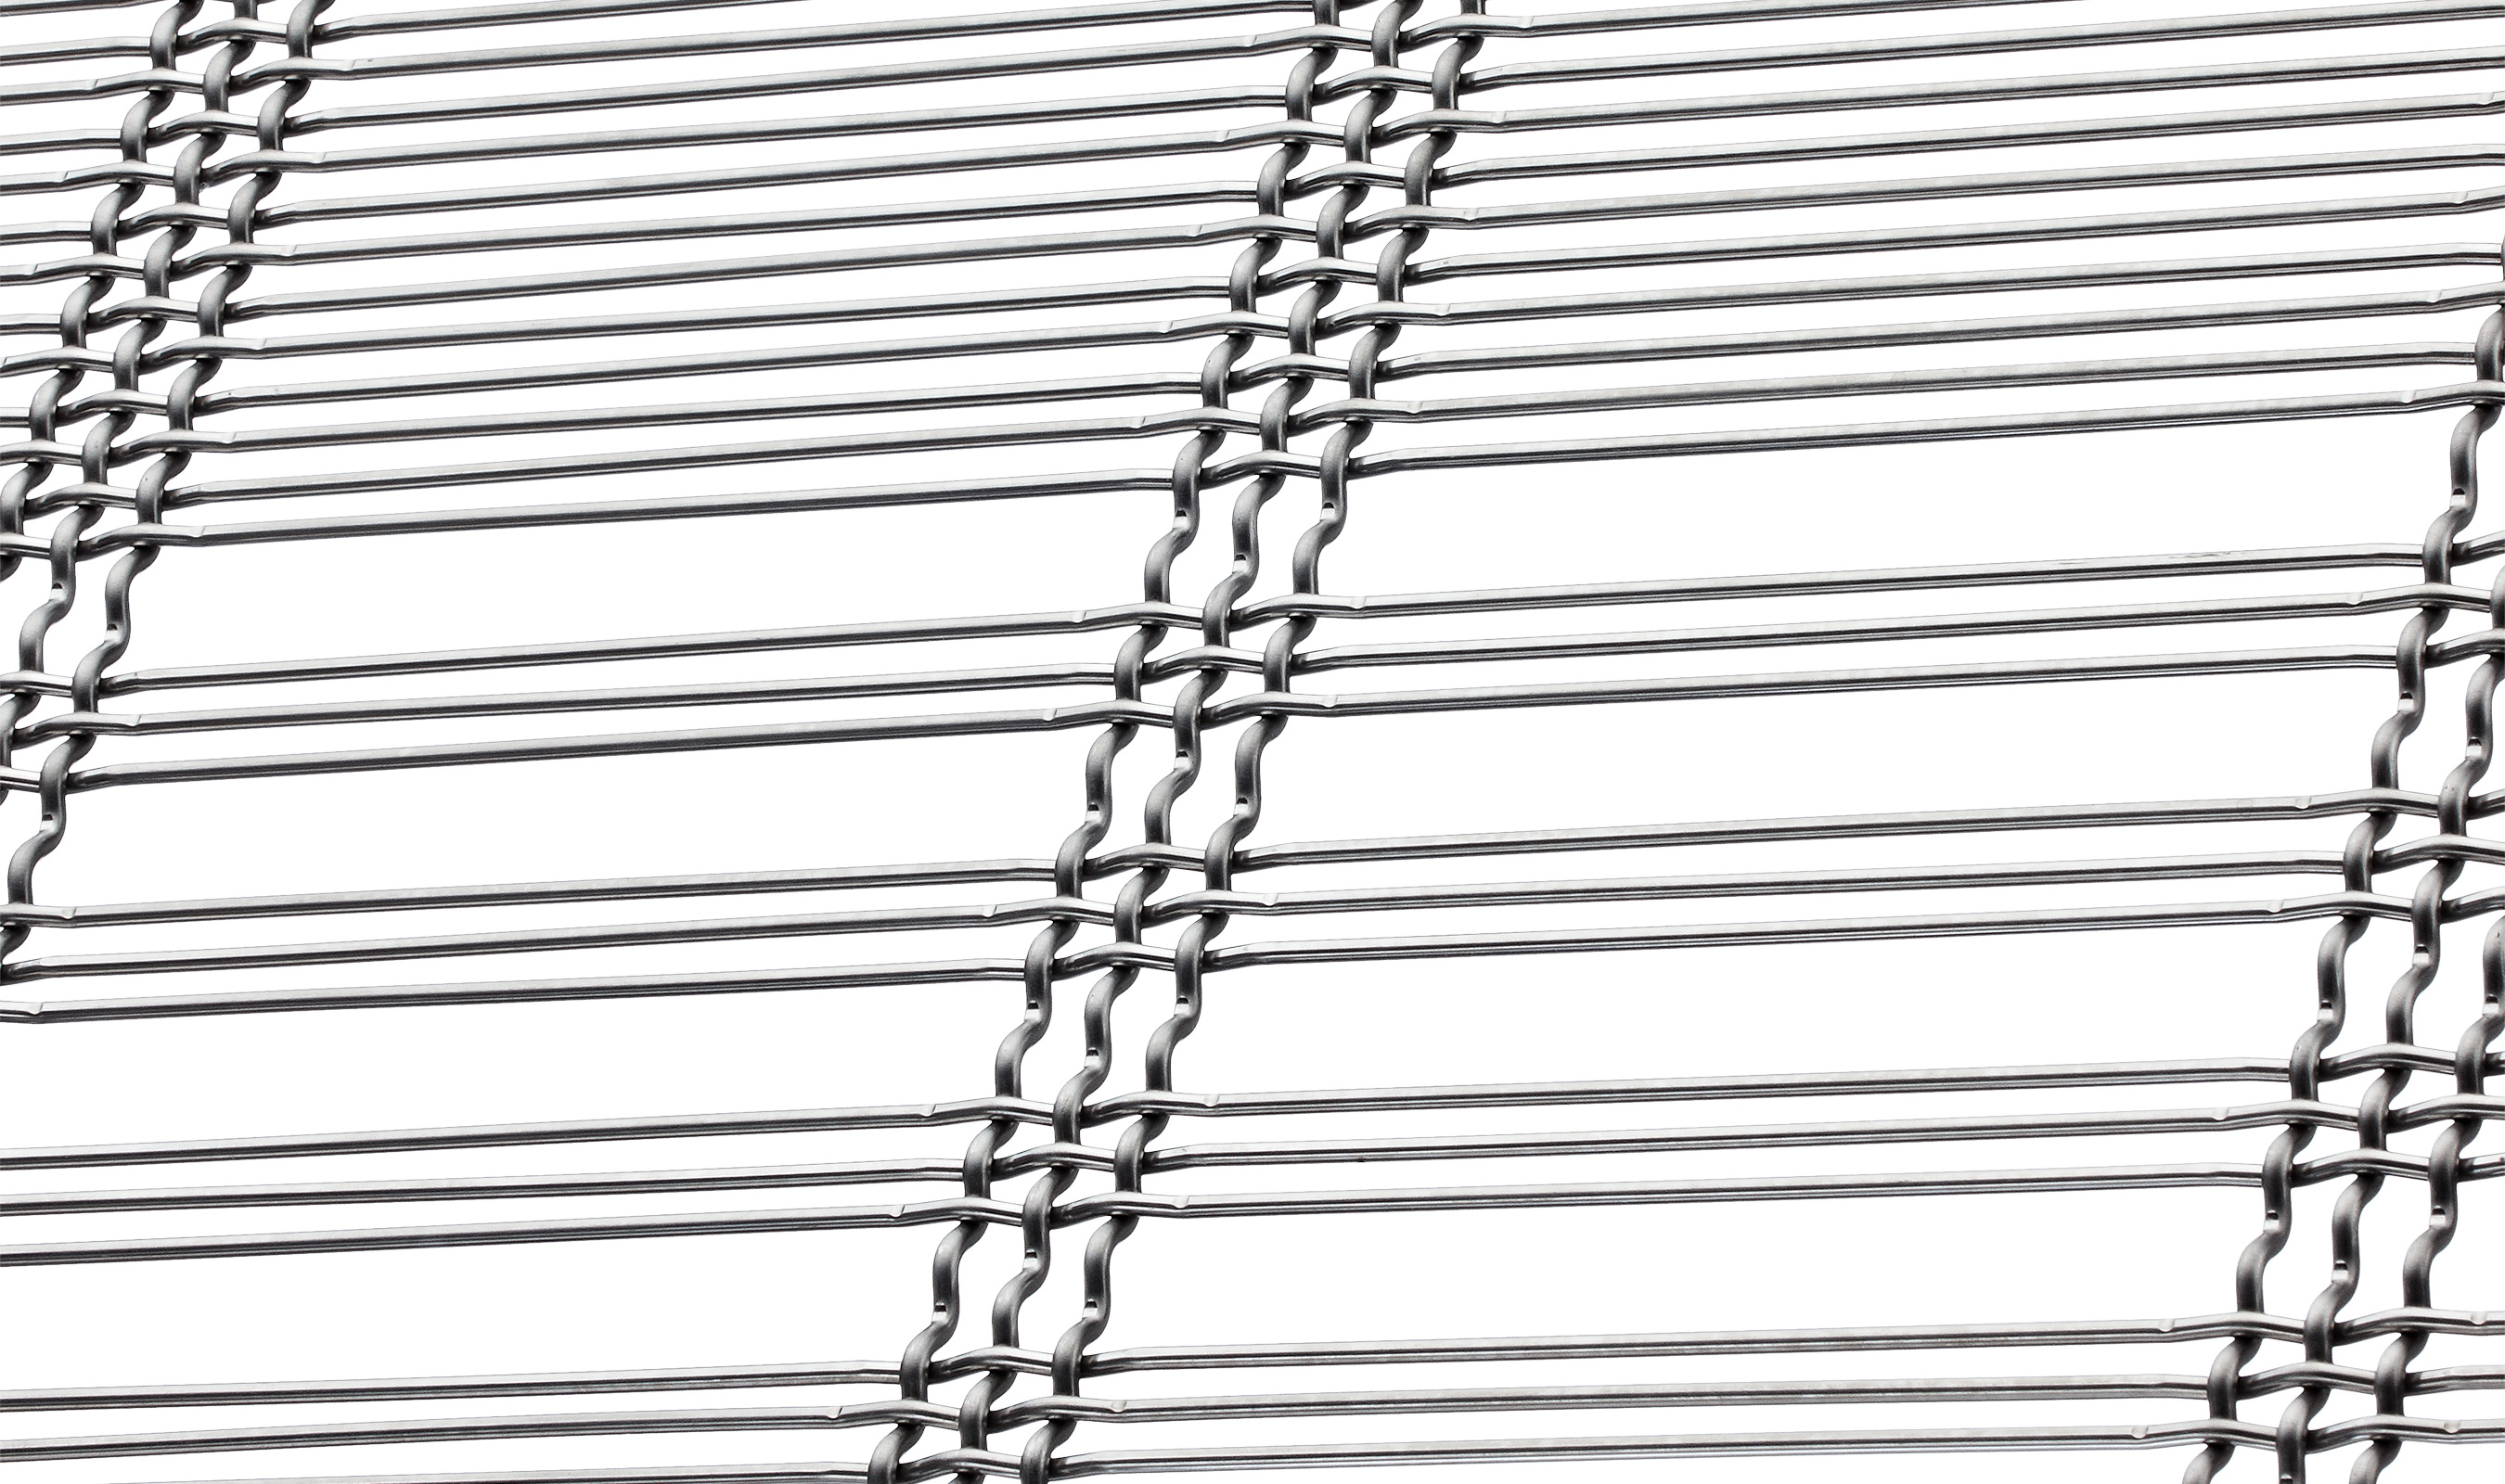 SJD-4 Angle in Stainless Woven Wire Mesh